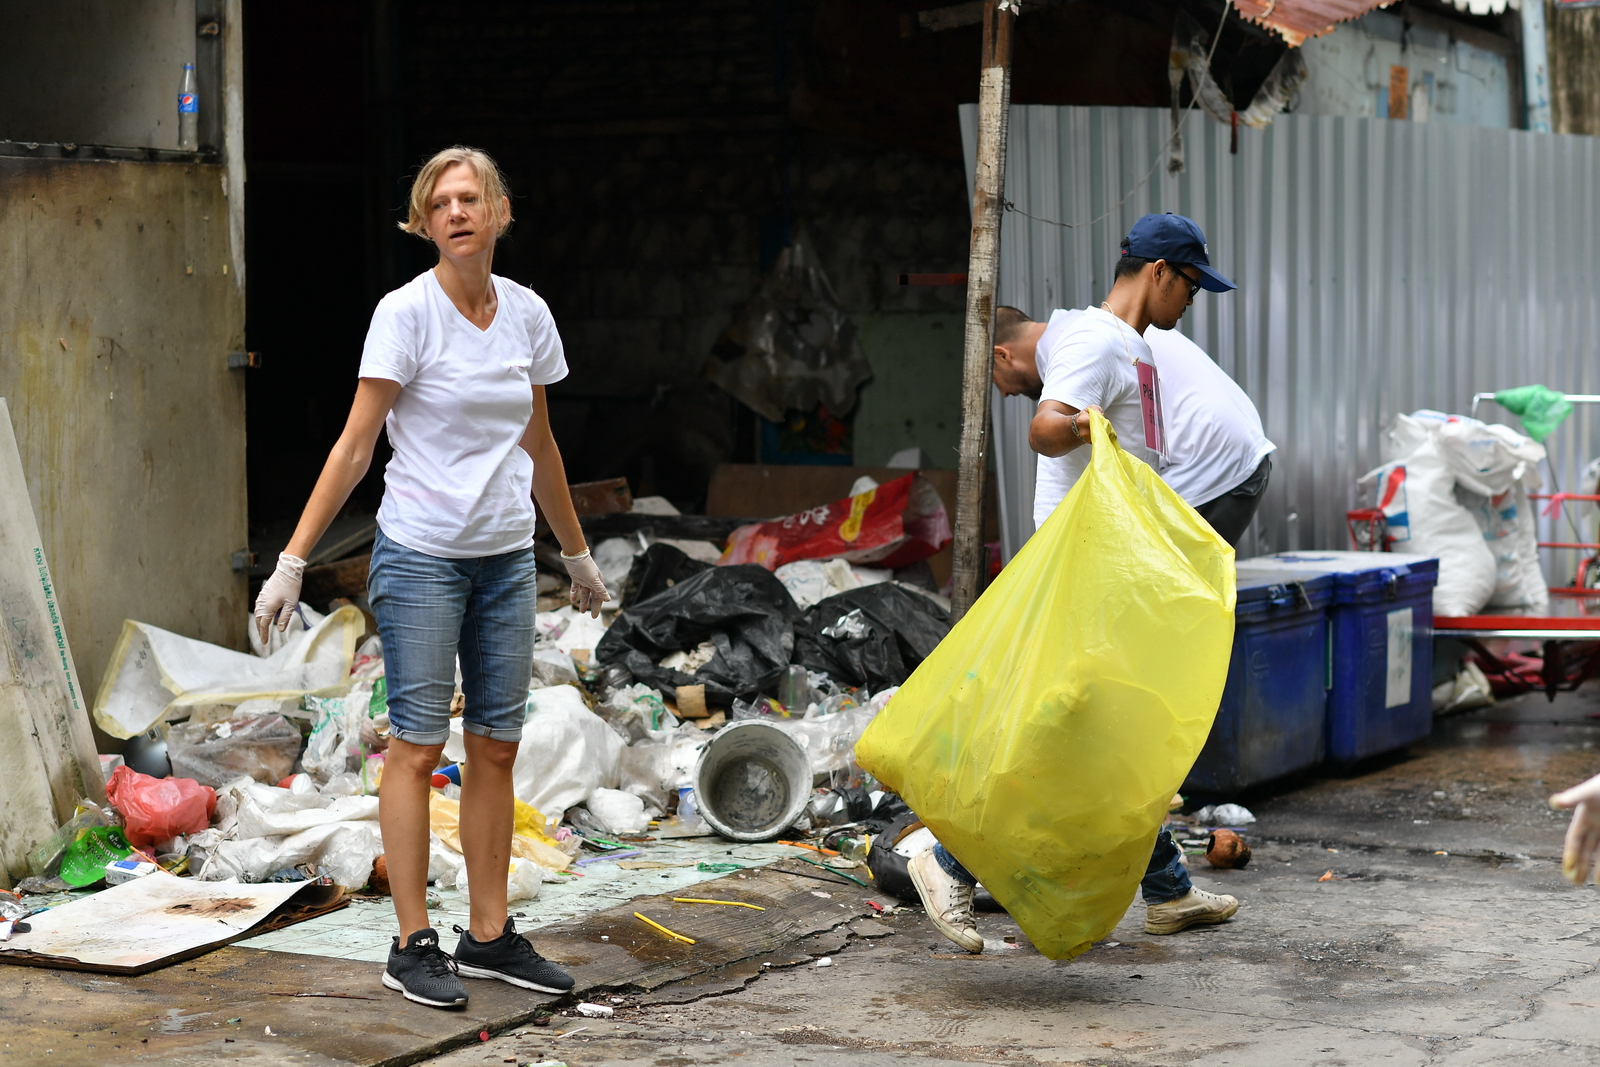 PTendercool-Event-Clean Up The World-190921-108